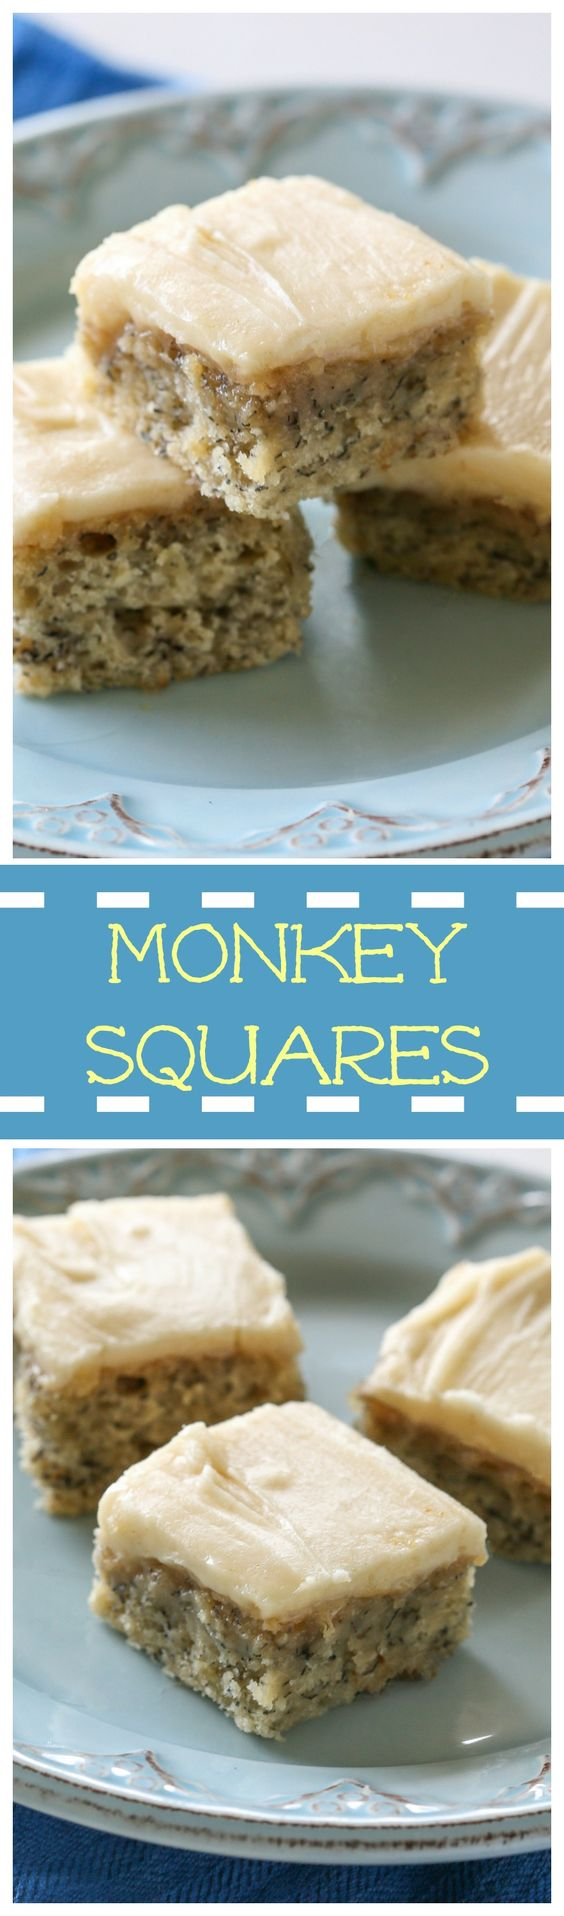 Monkey Squares - a moist banana bread bar with a browned butter frosting! the-girl-who-ate-everything.com